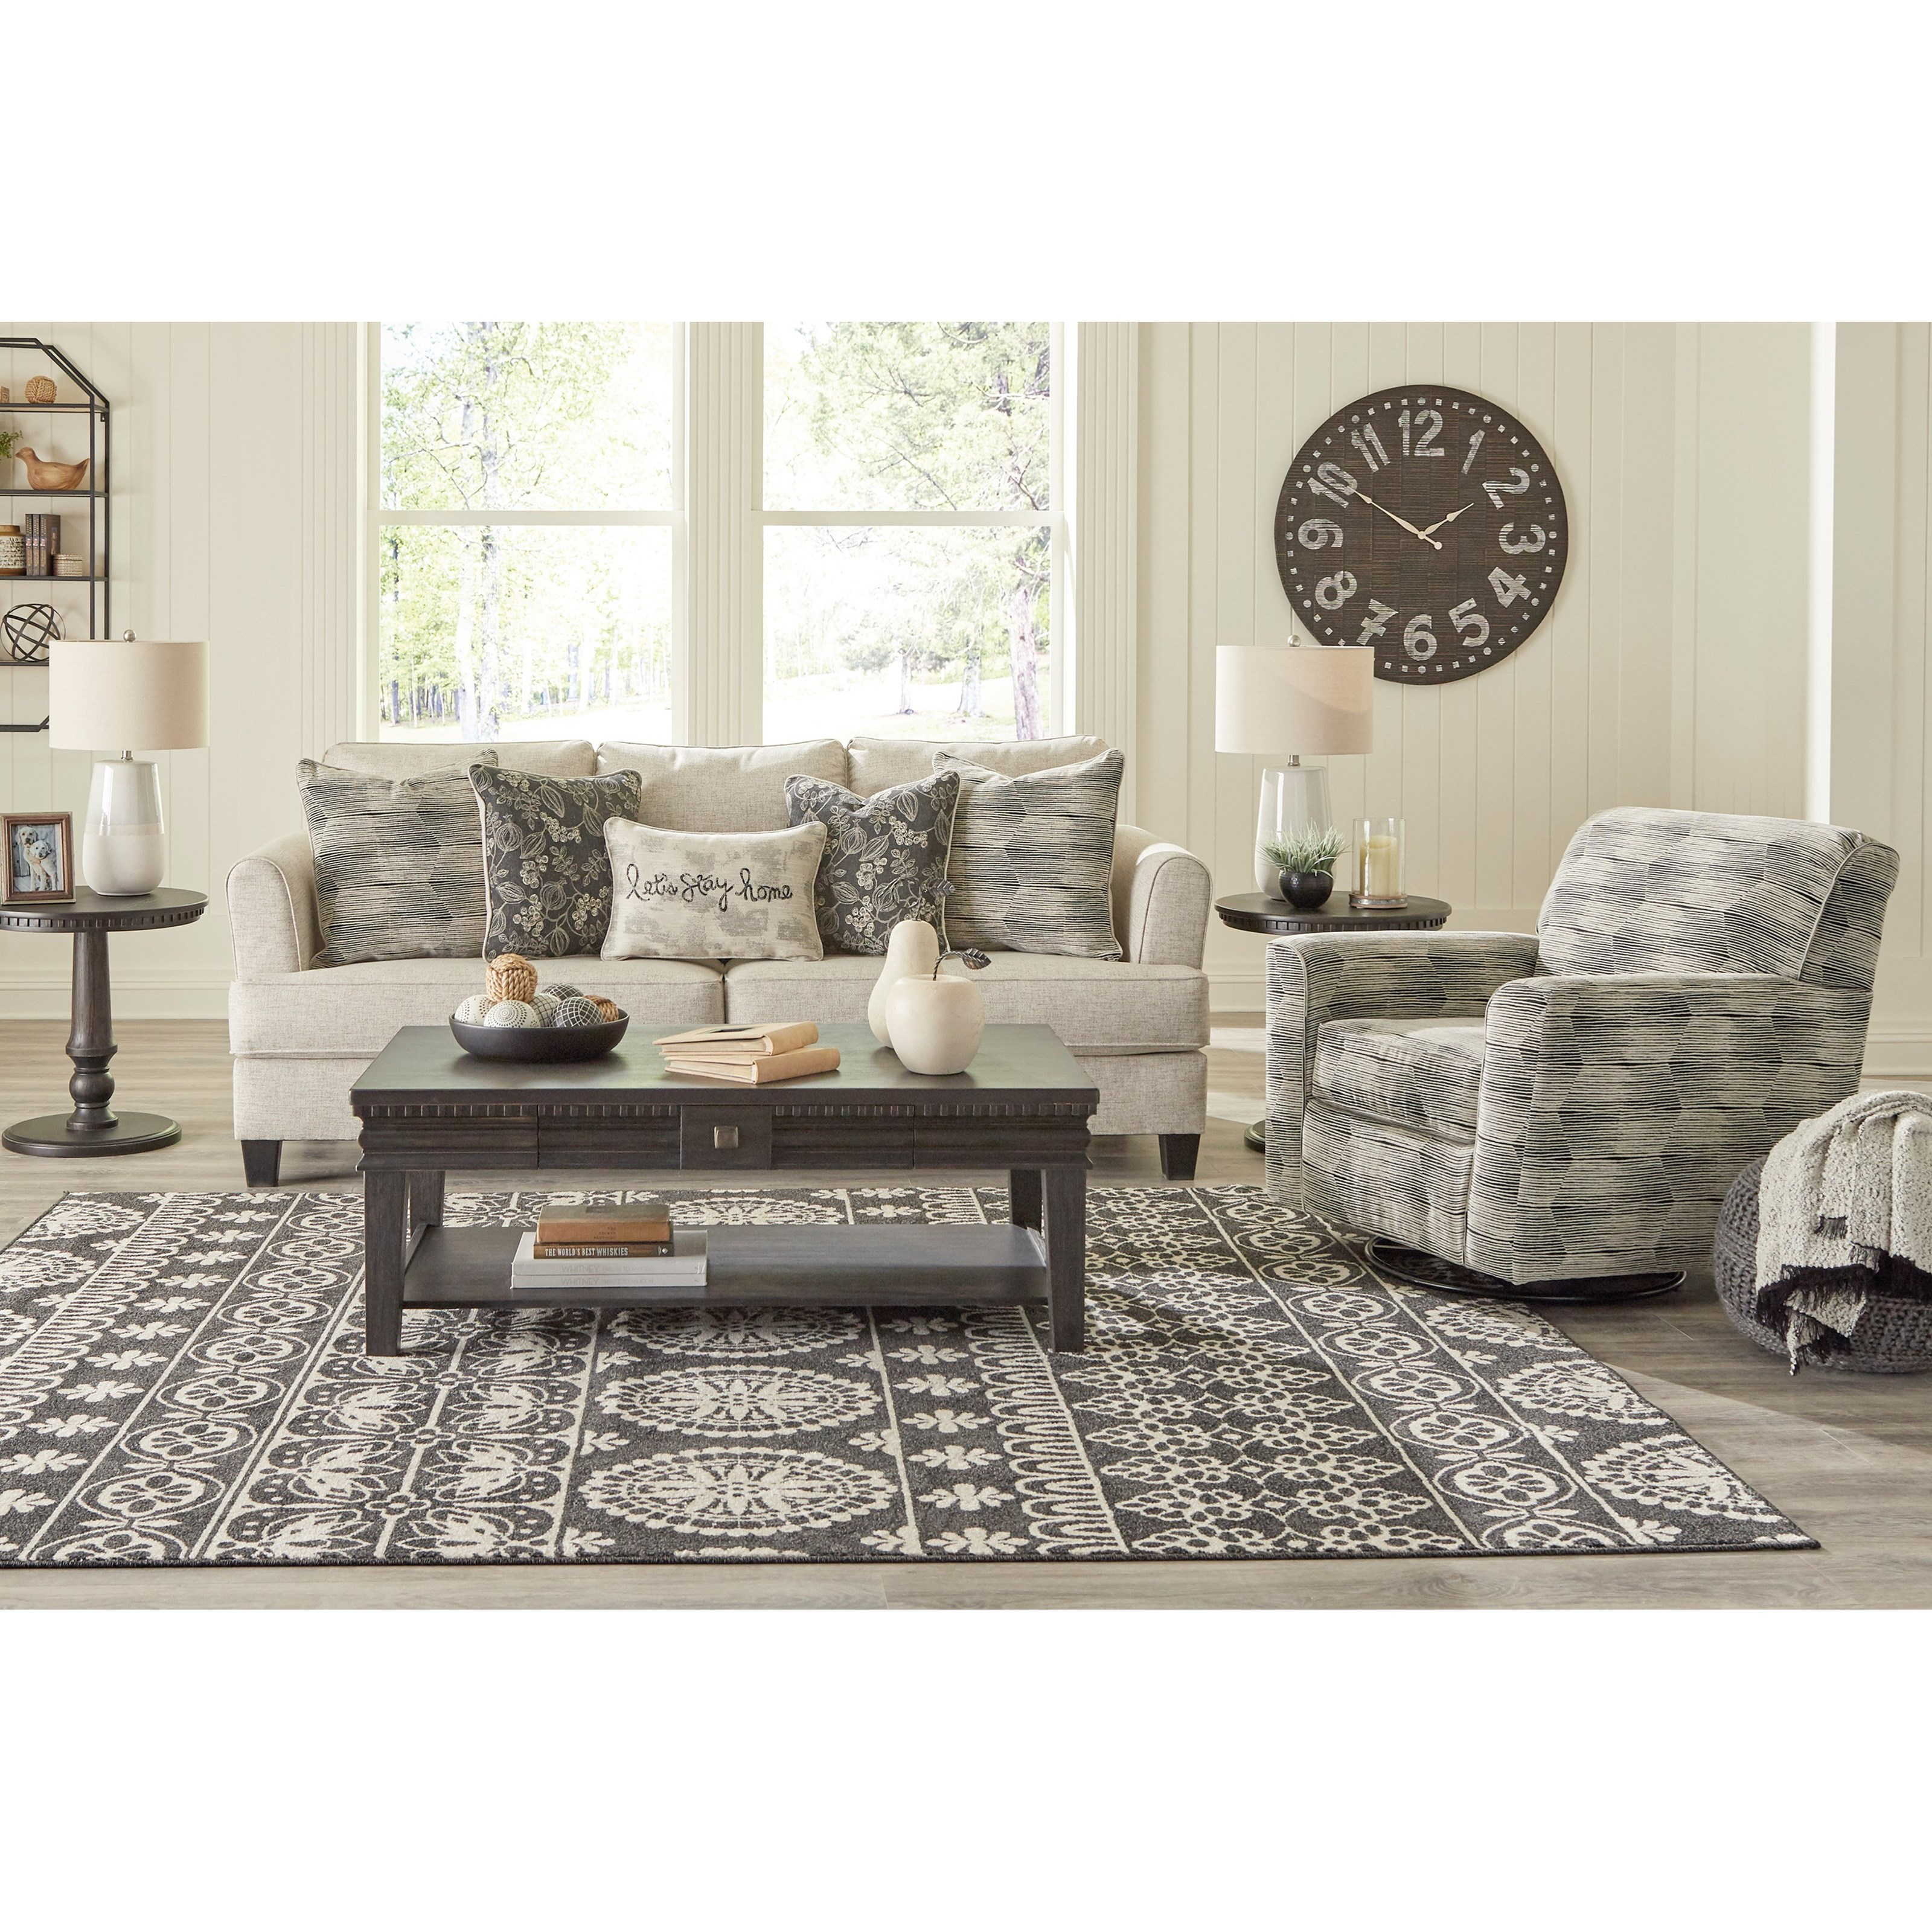 Callisburg Living Room Group by Benchcraft at Catalog Outlet